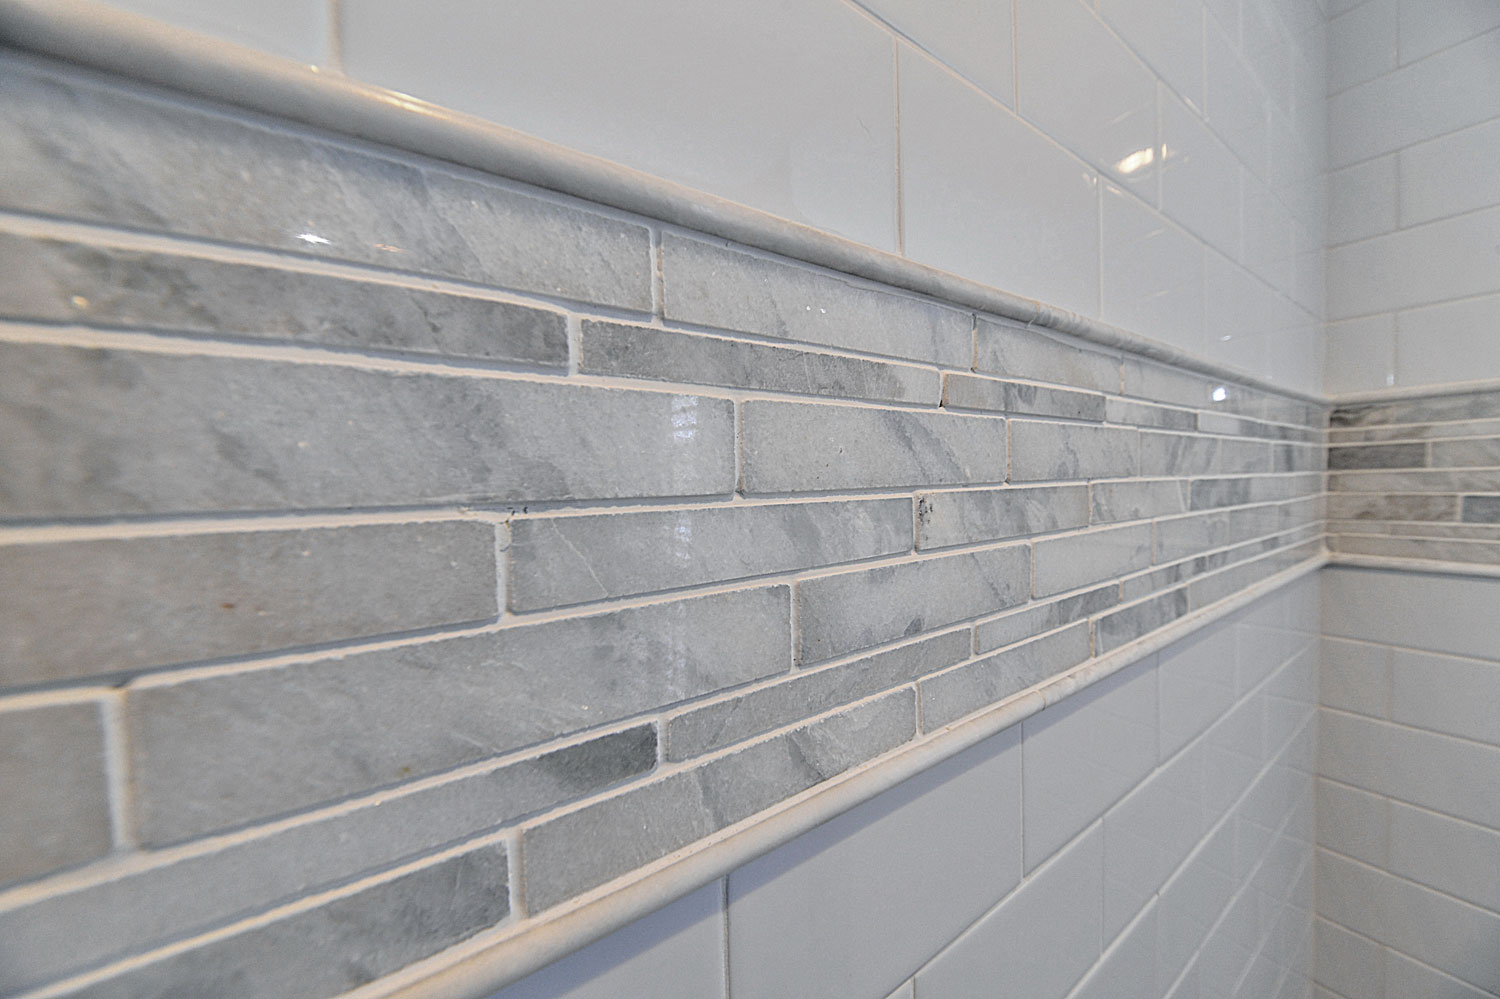 Bathroom Remodeling Naperville chicago bathroom remodeling bathroom remodel contractor chicago we beat any pricesunny minimalist Ideas Tile Cabinet Granite Quartz Bathroom Remodeling Naperville Sebring Services